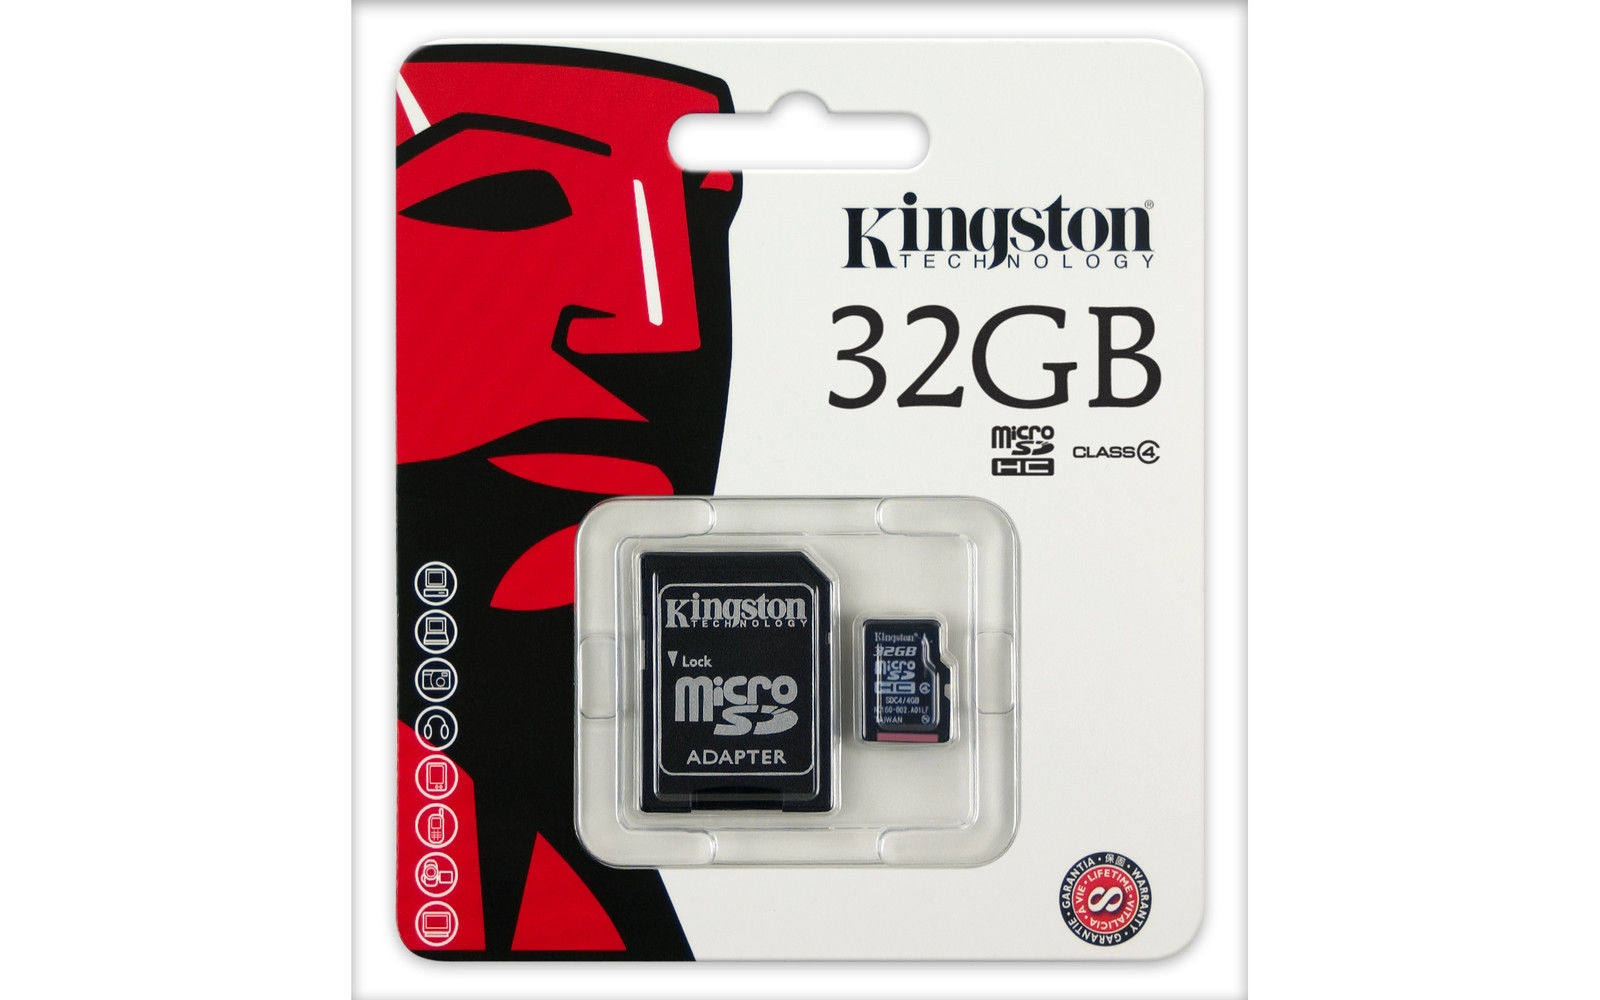 90MBs Works for Kingston Kingston Industrial Grade 32GB Zen Mobile M9 MicroSDHC Card Verified by SanFlash.